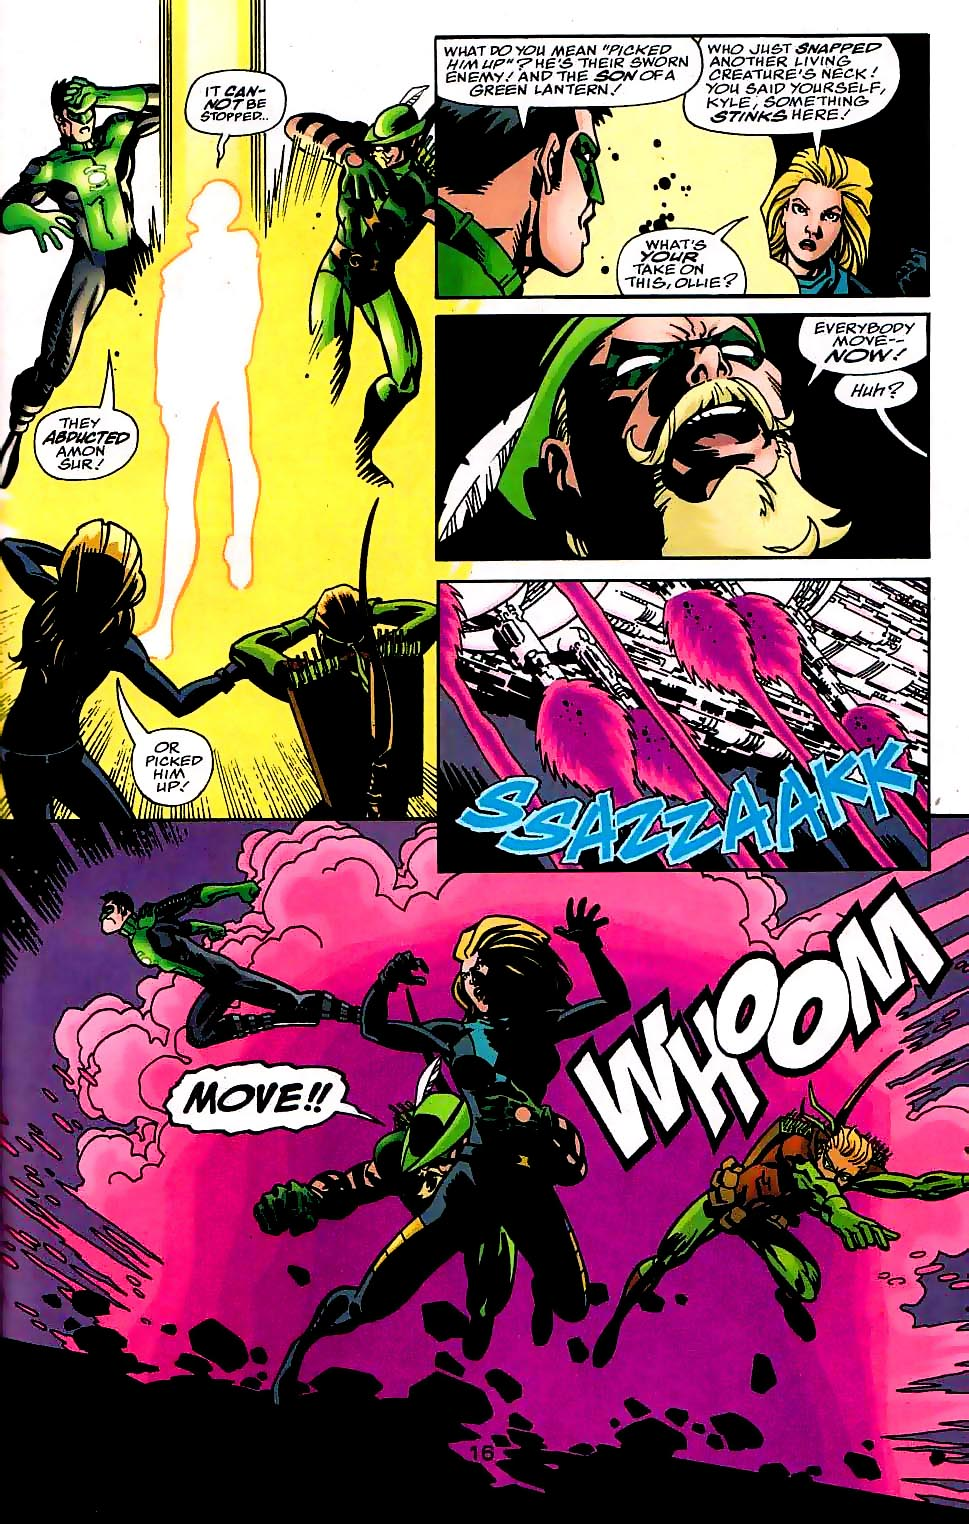 green arrow v2 25 (kebbin) 16Teleportation.jpg